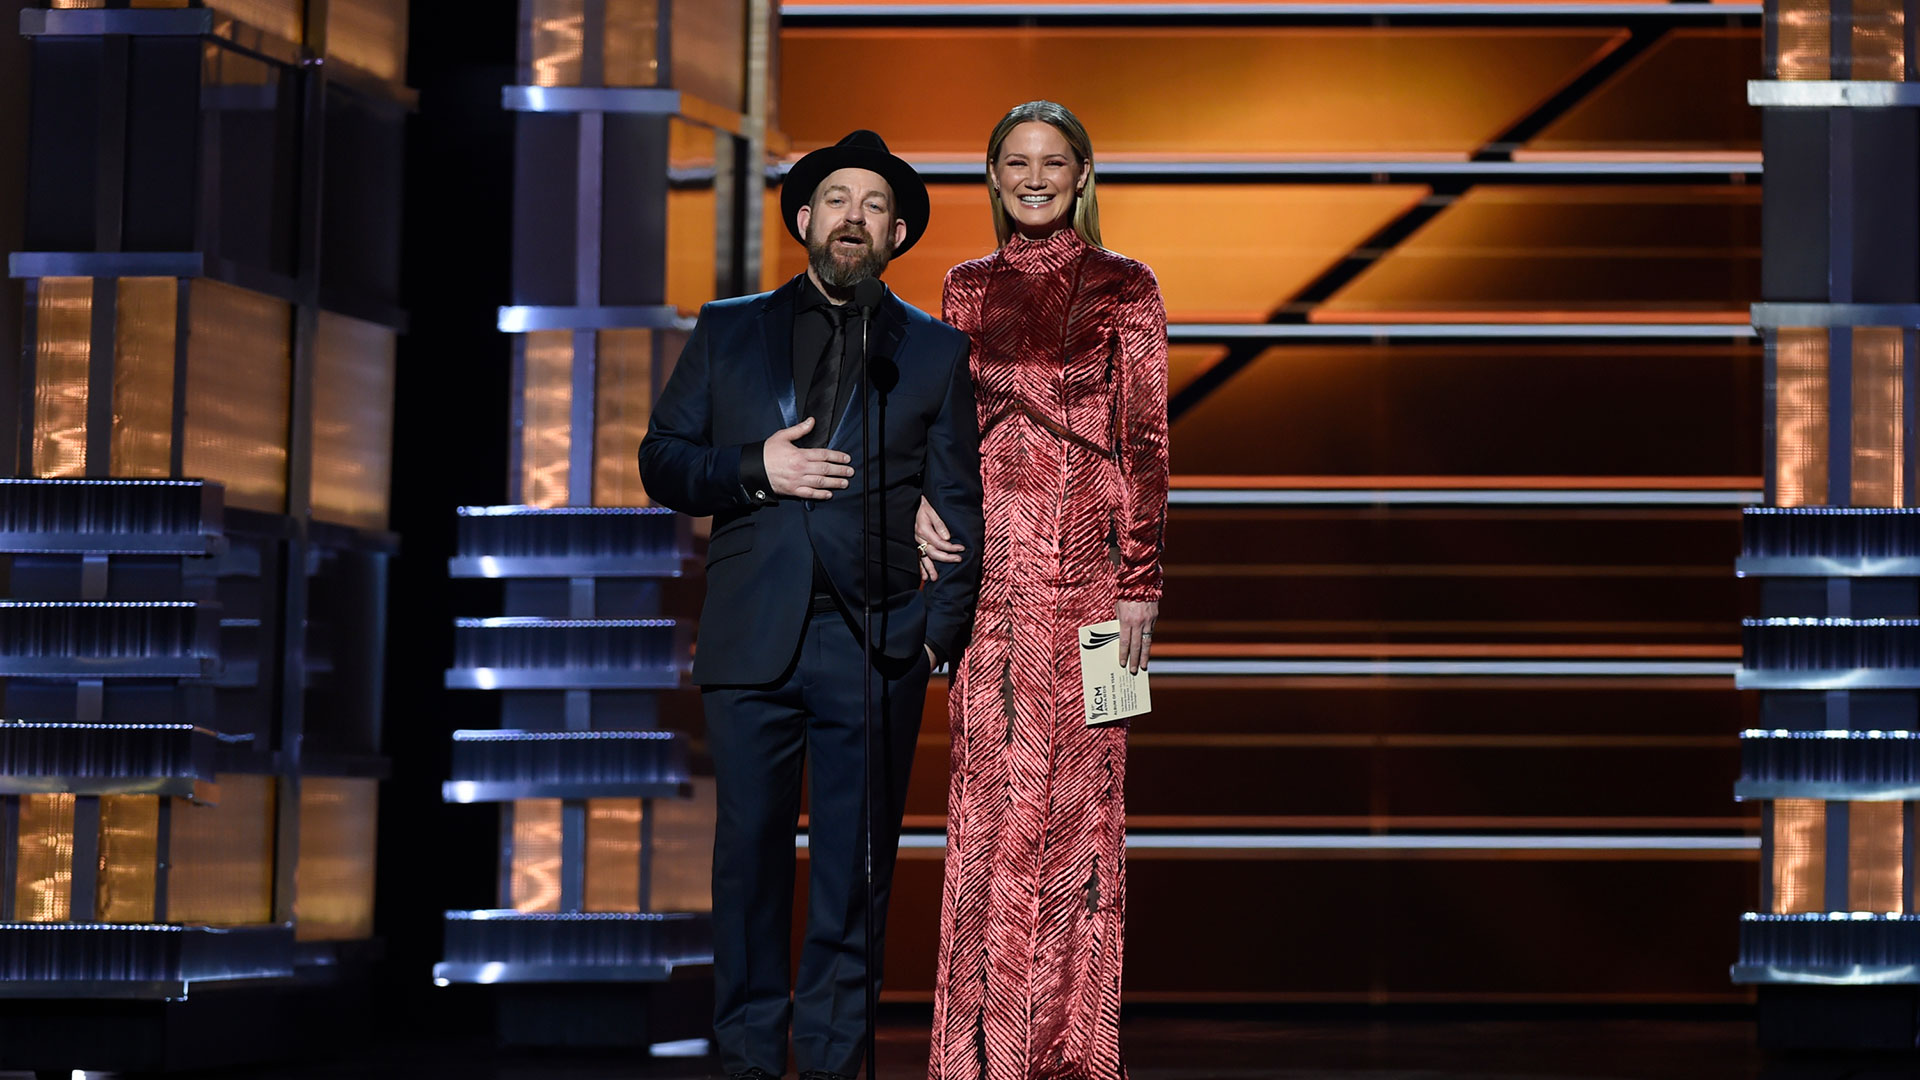 From A Room: Vol. 1 by Chris Stapleton wins Album of the Year at the 53rd ACM Awards.